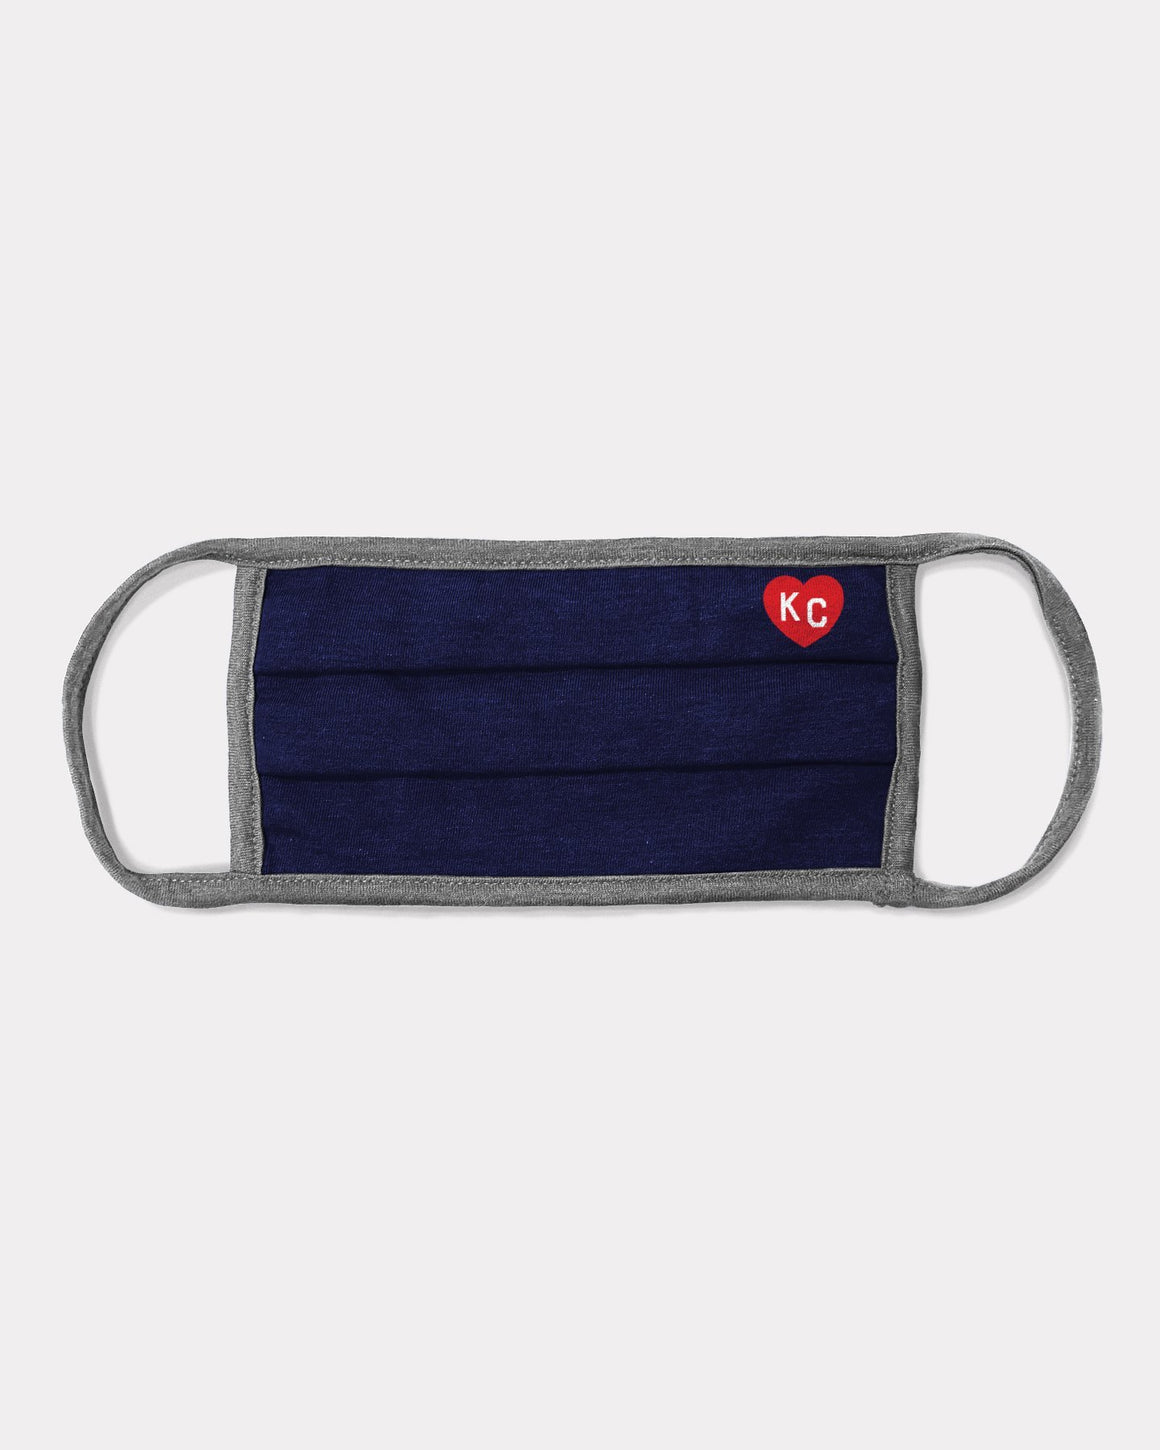 CHARLIE HUSTLE | NAVY, GREY AND RED KC HEART FACE MASK